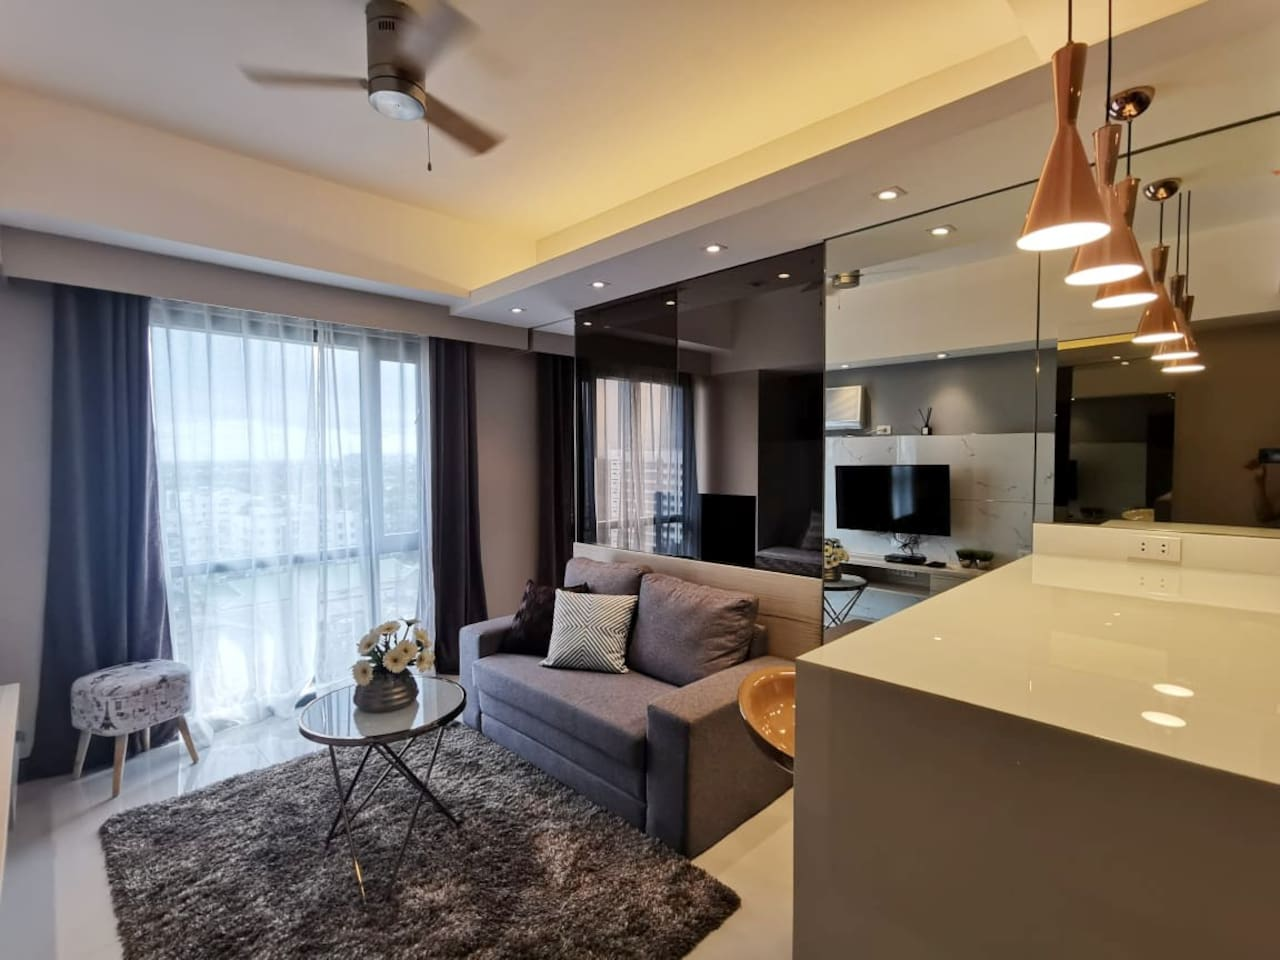 Living area is equipped with luxe furnishings, as well as a sofa bed which can fit up to 2 persons.